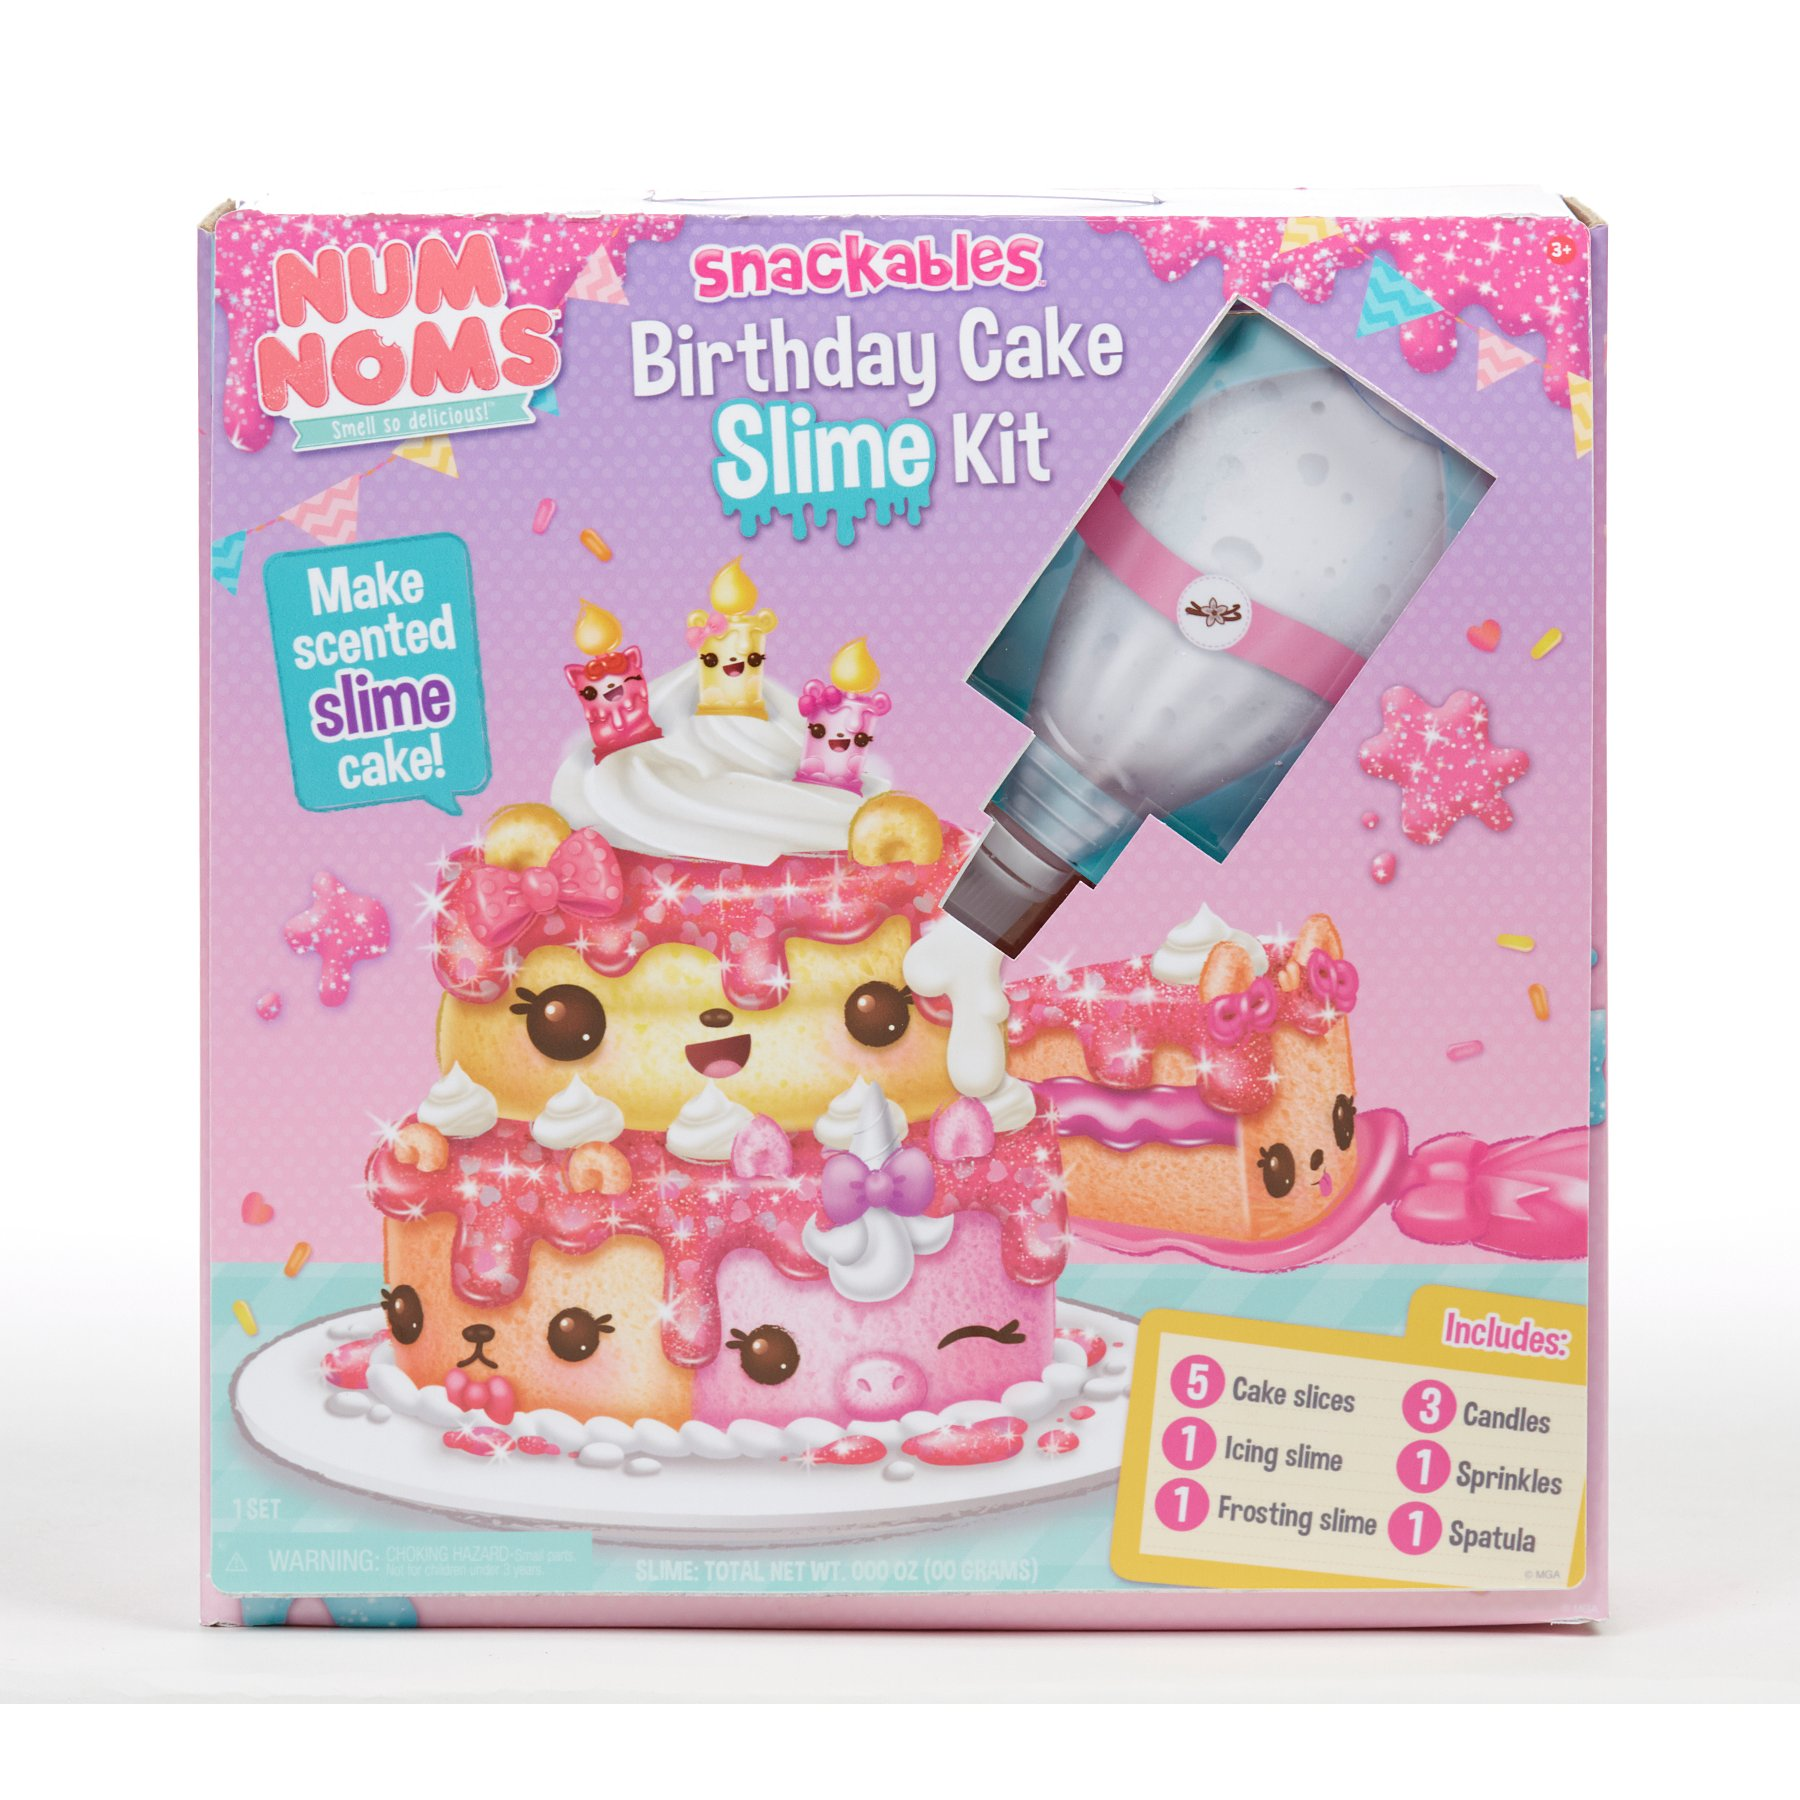 Num Noms Snackables Birthday Cake Slime Kit